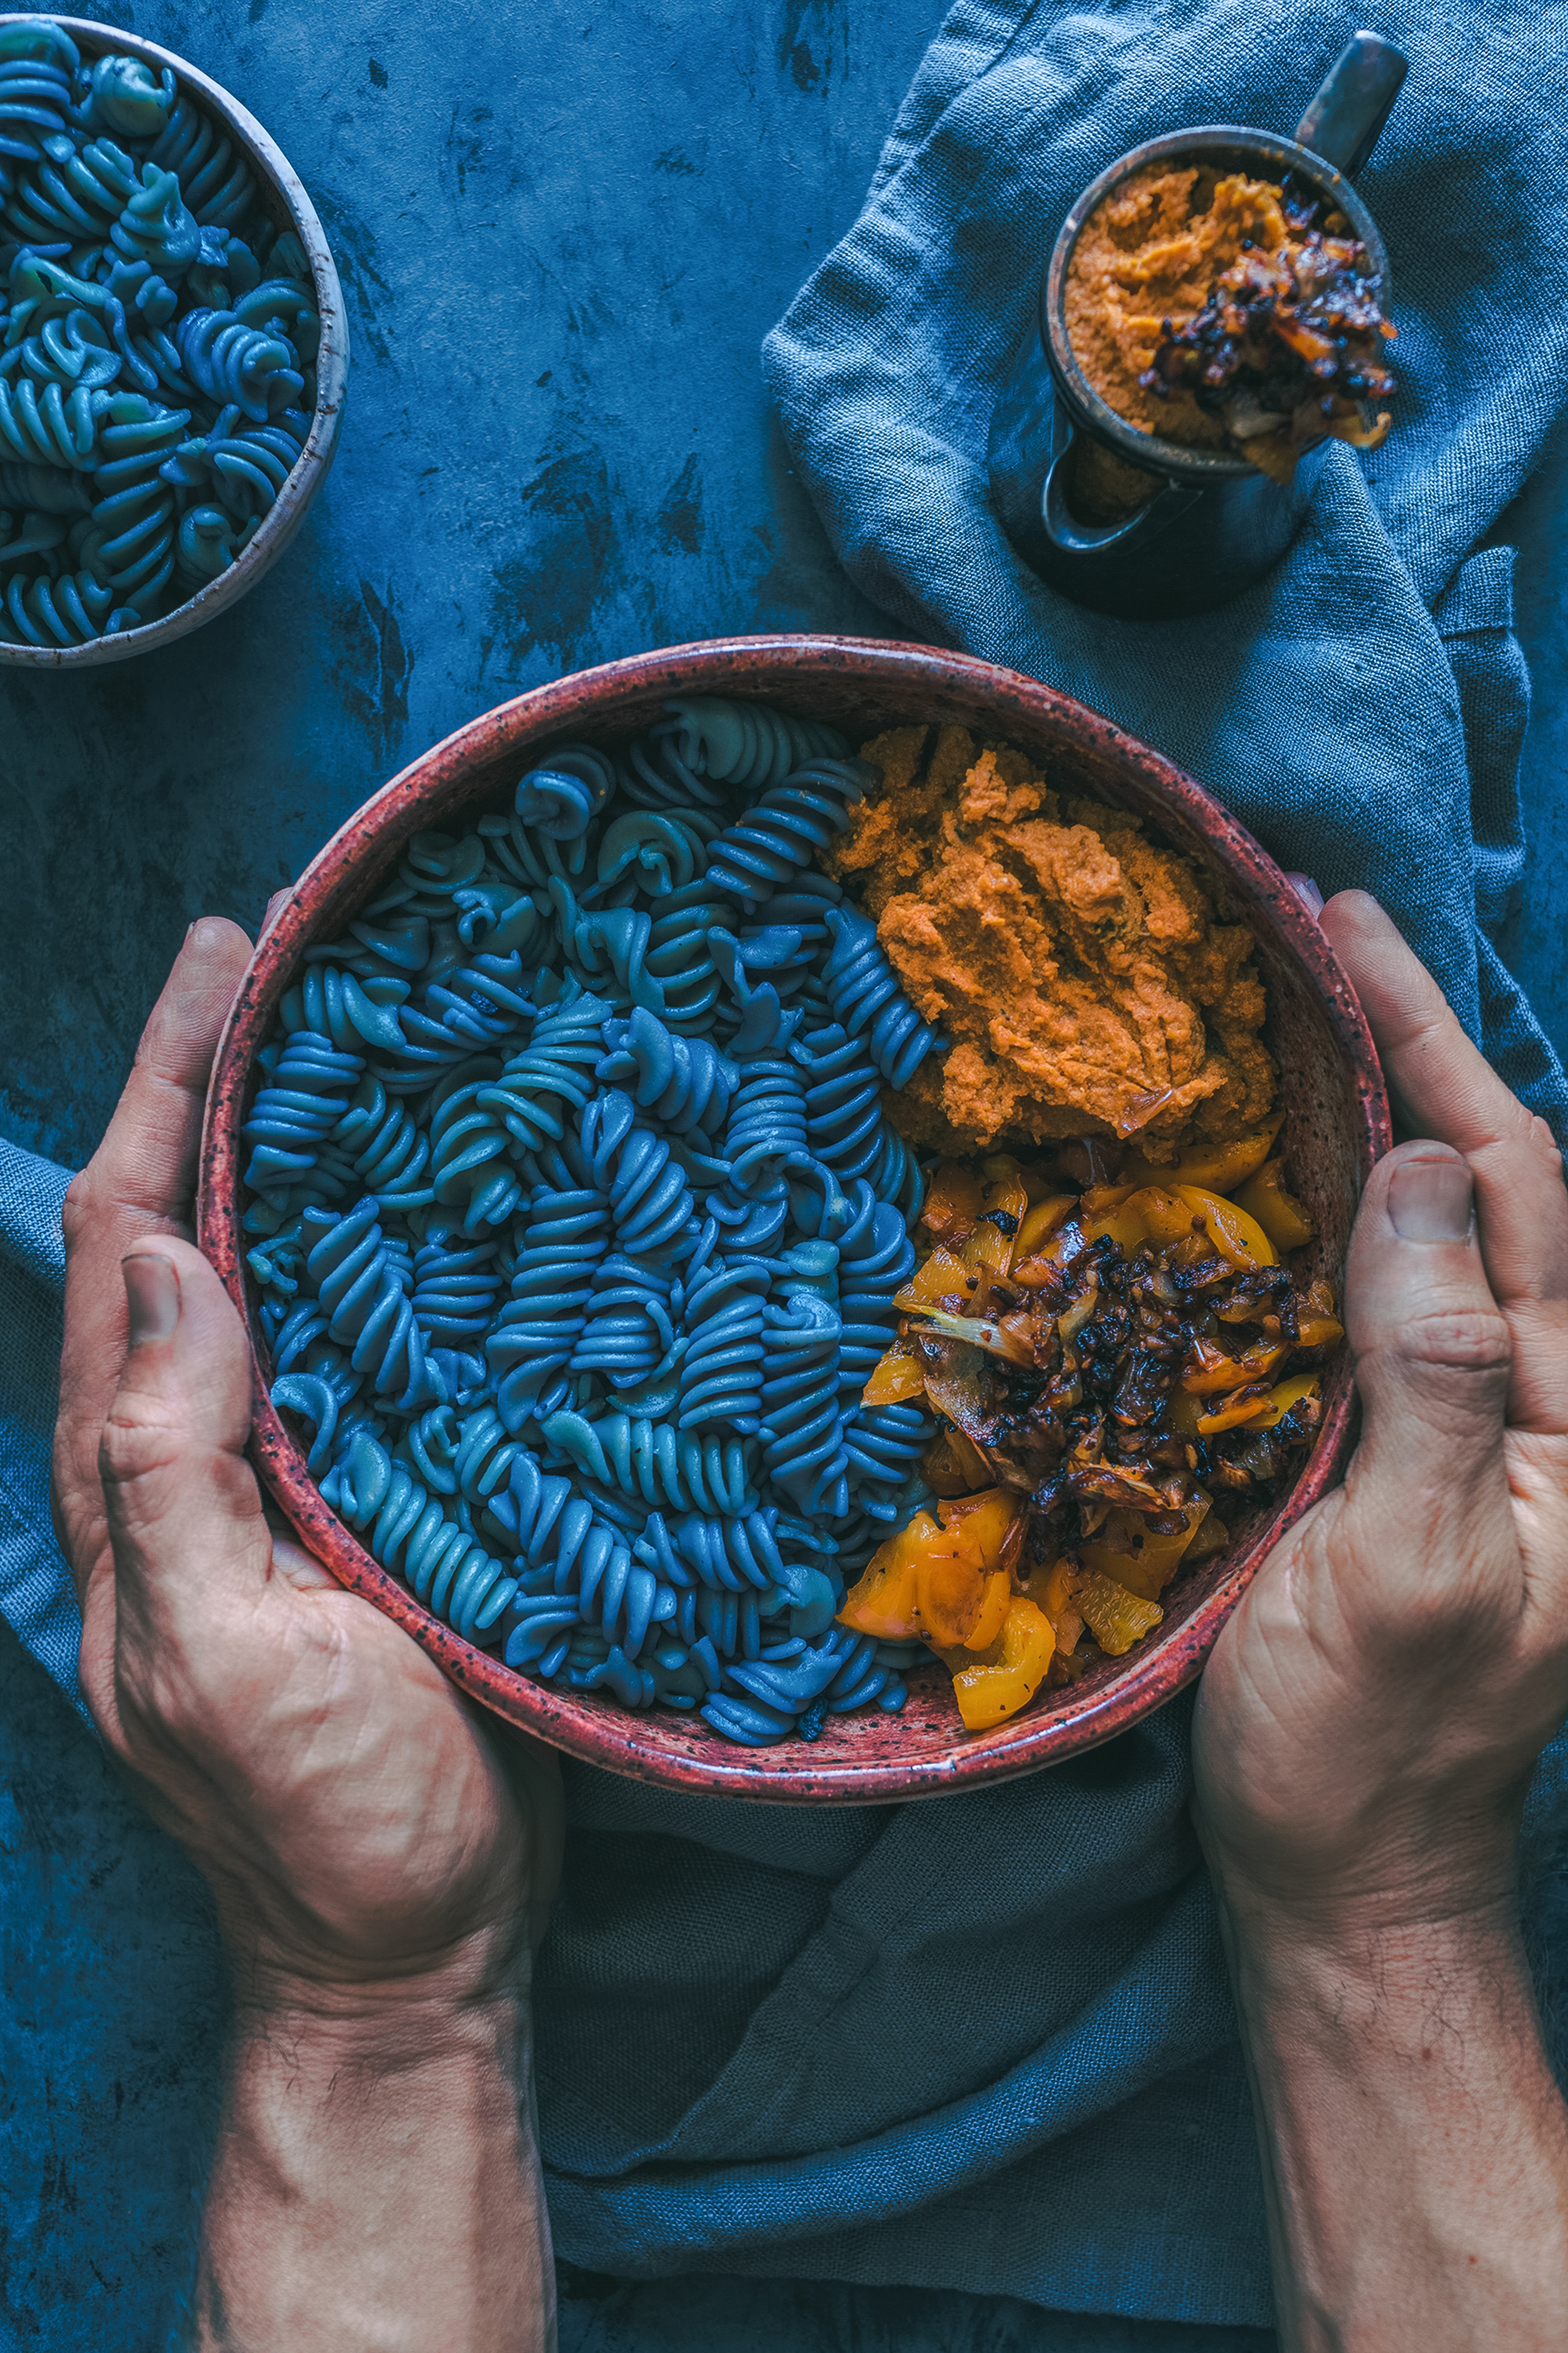 person holding bowl of pasta dish